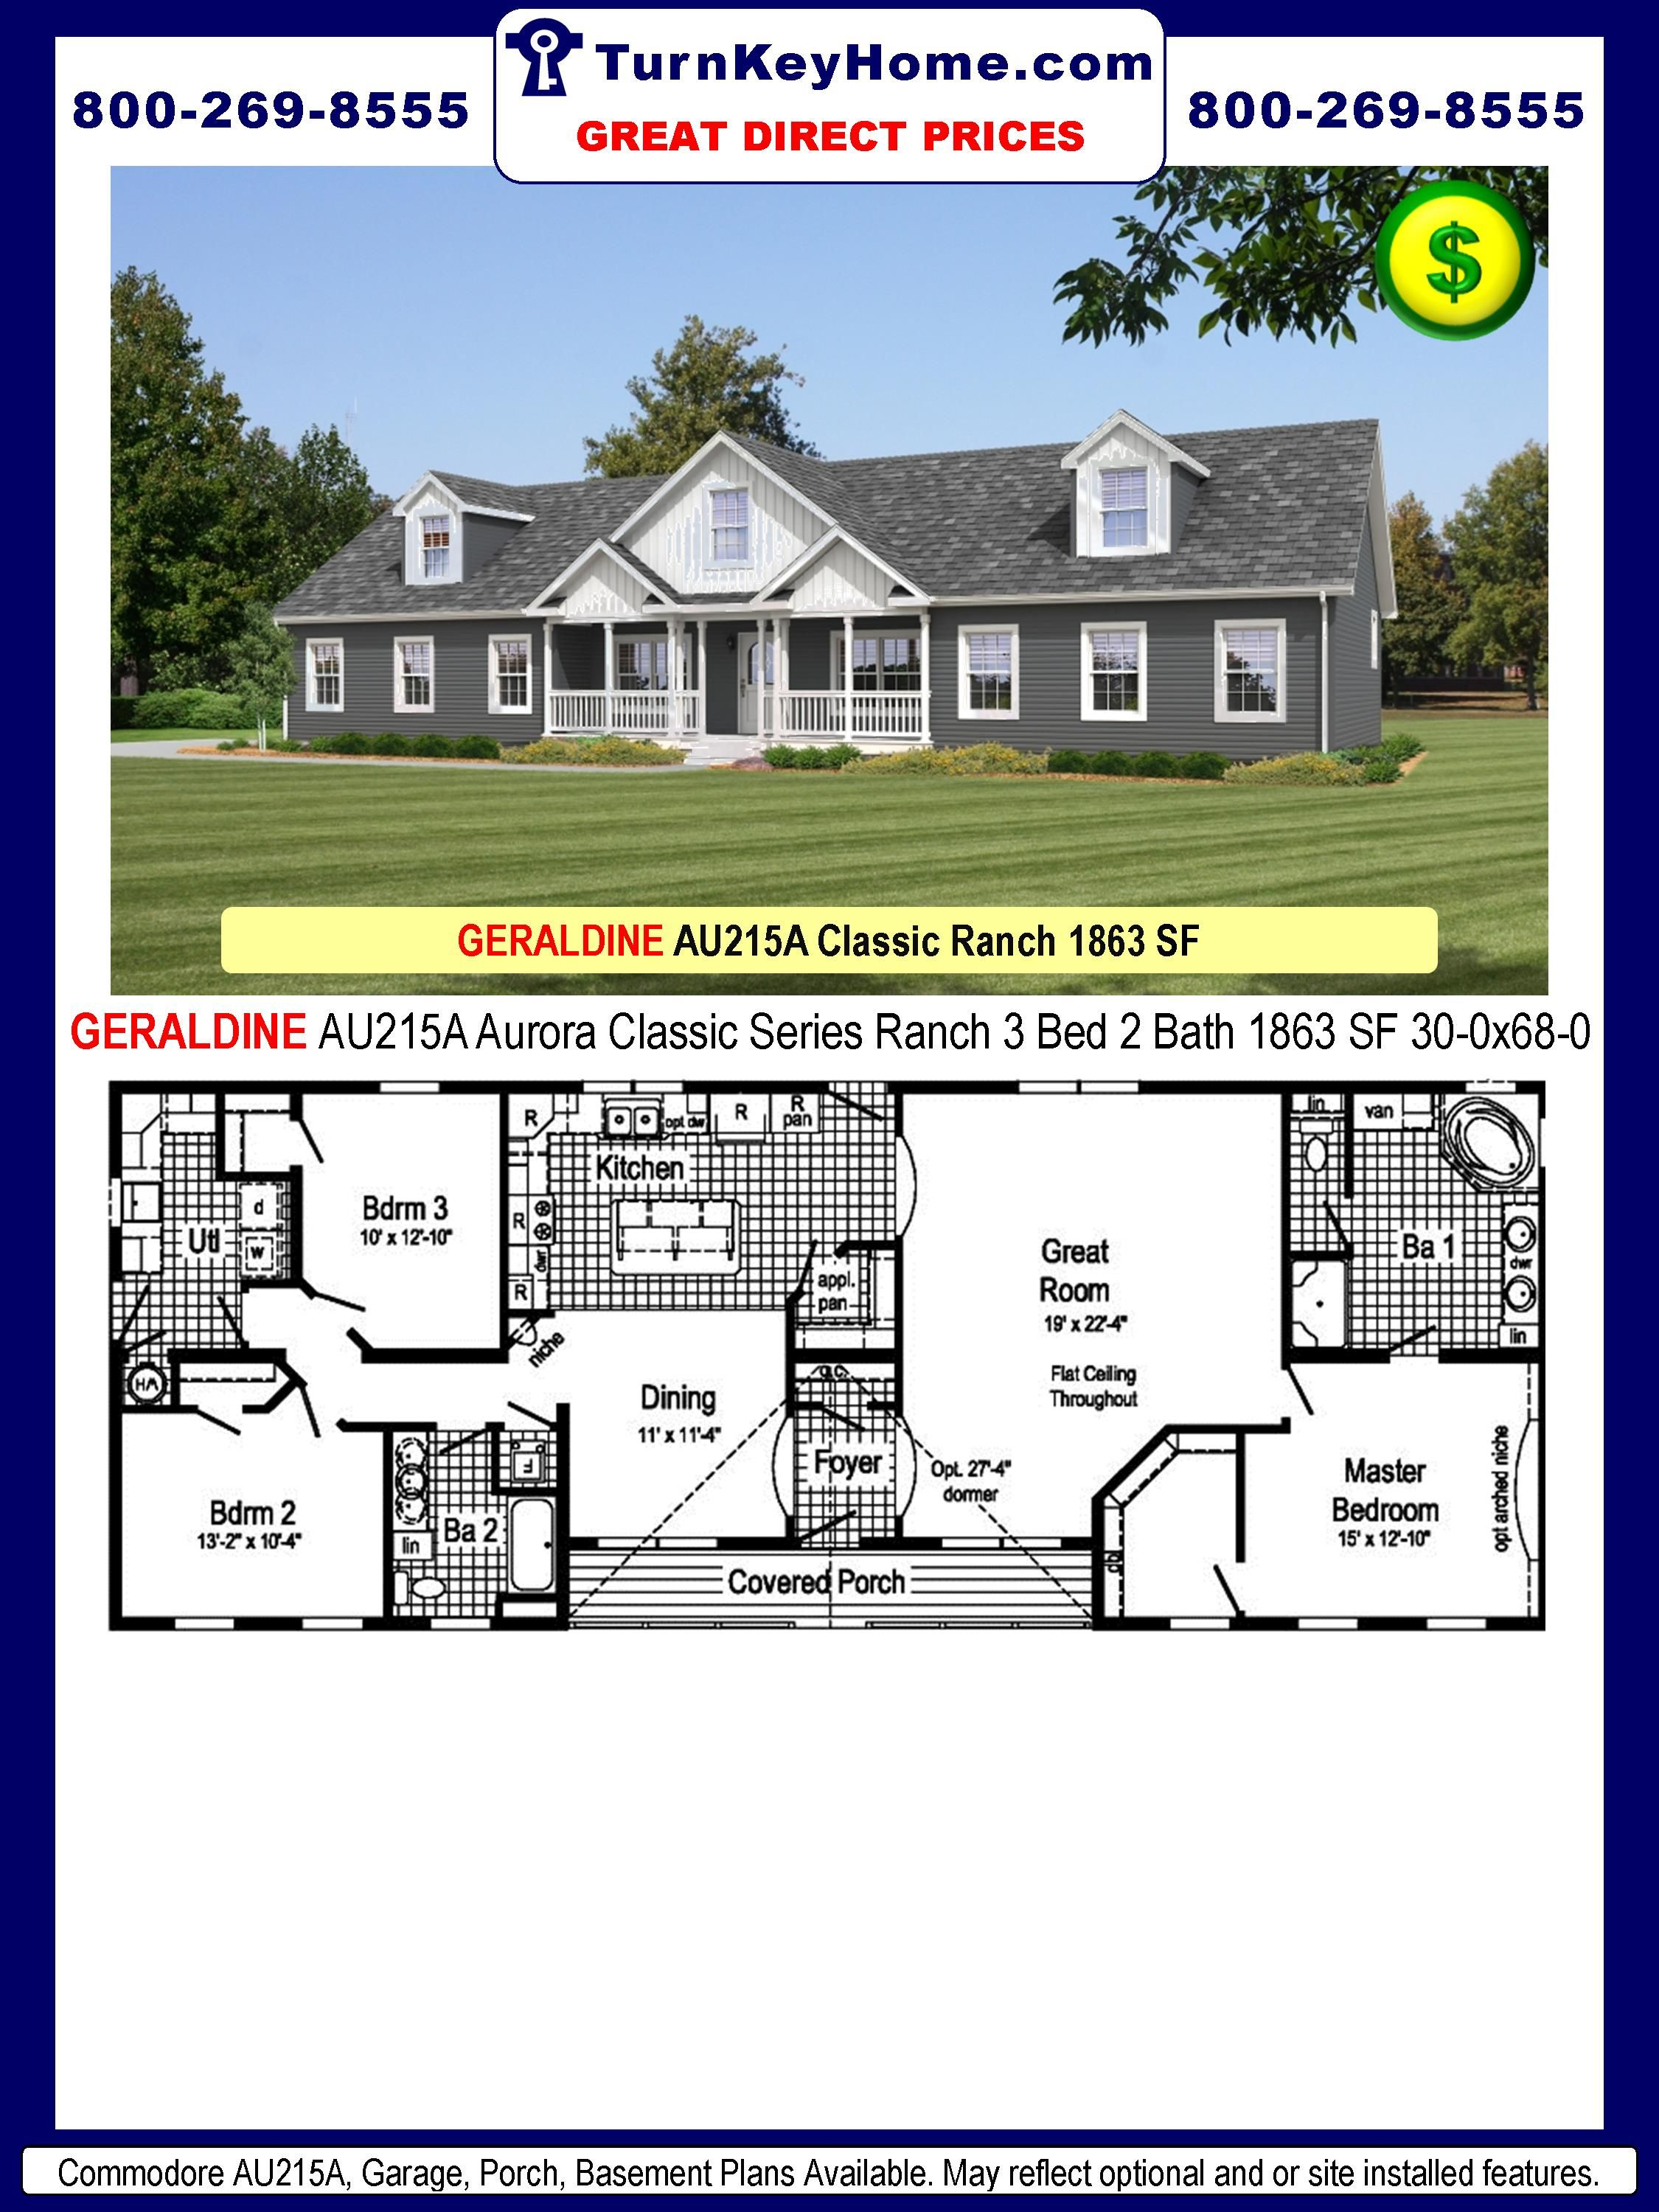 30 X 70 Modular House Plans Modular Homes Manufactured Homes Best Direct Price Modular Home Prices Modular Homes Manufactured Home Prices